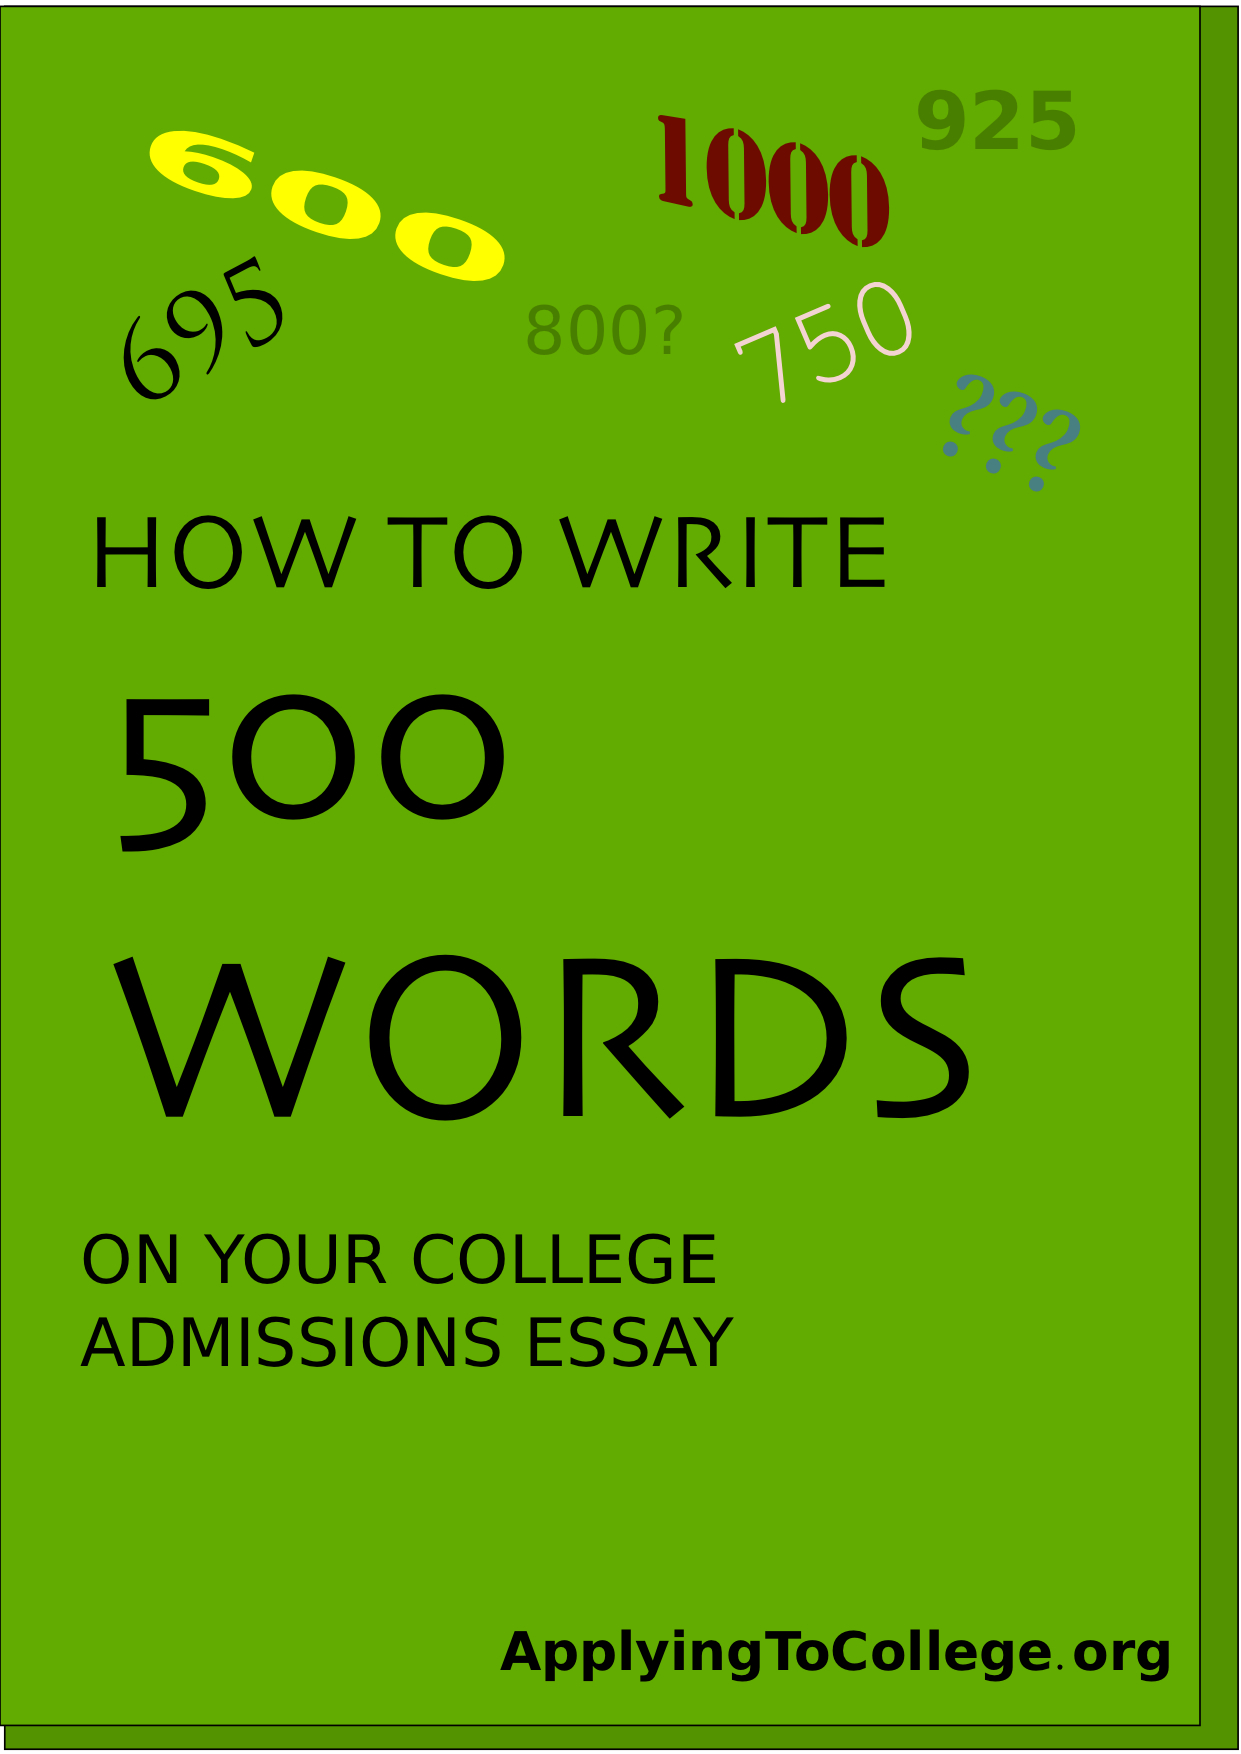 Essay 500 words